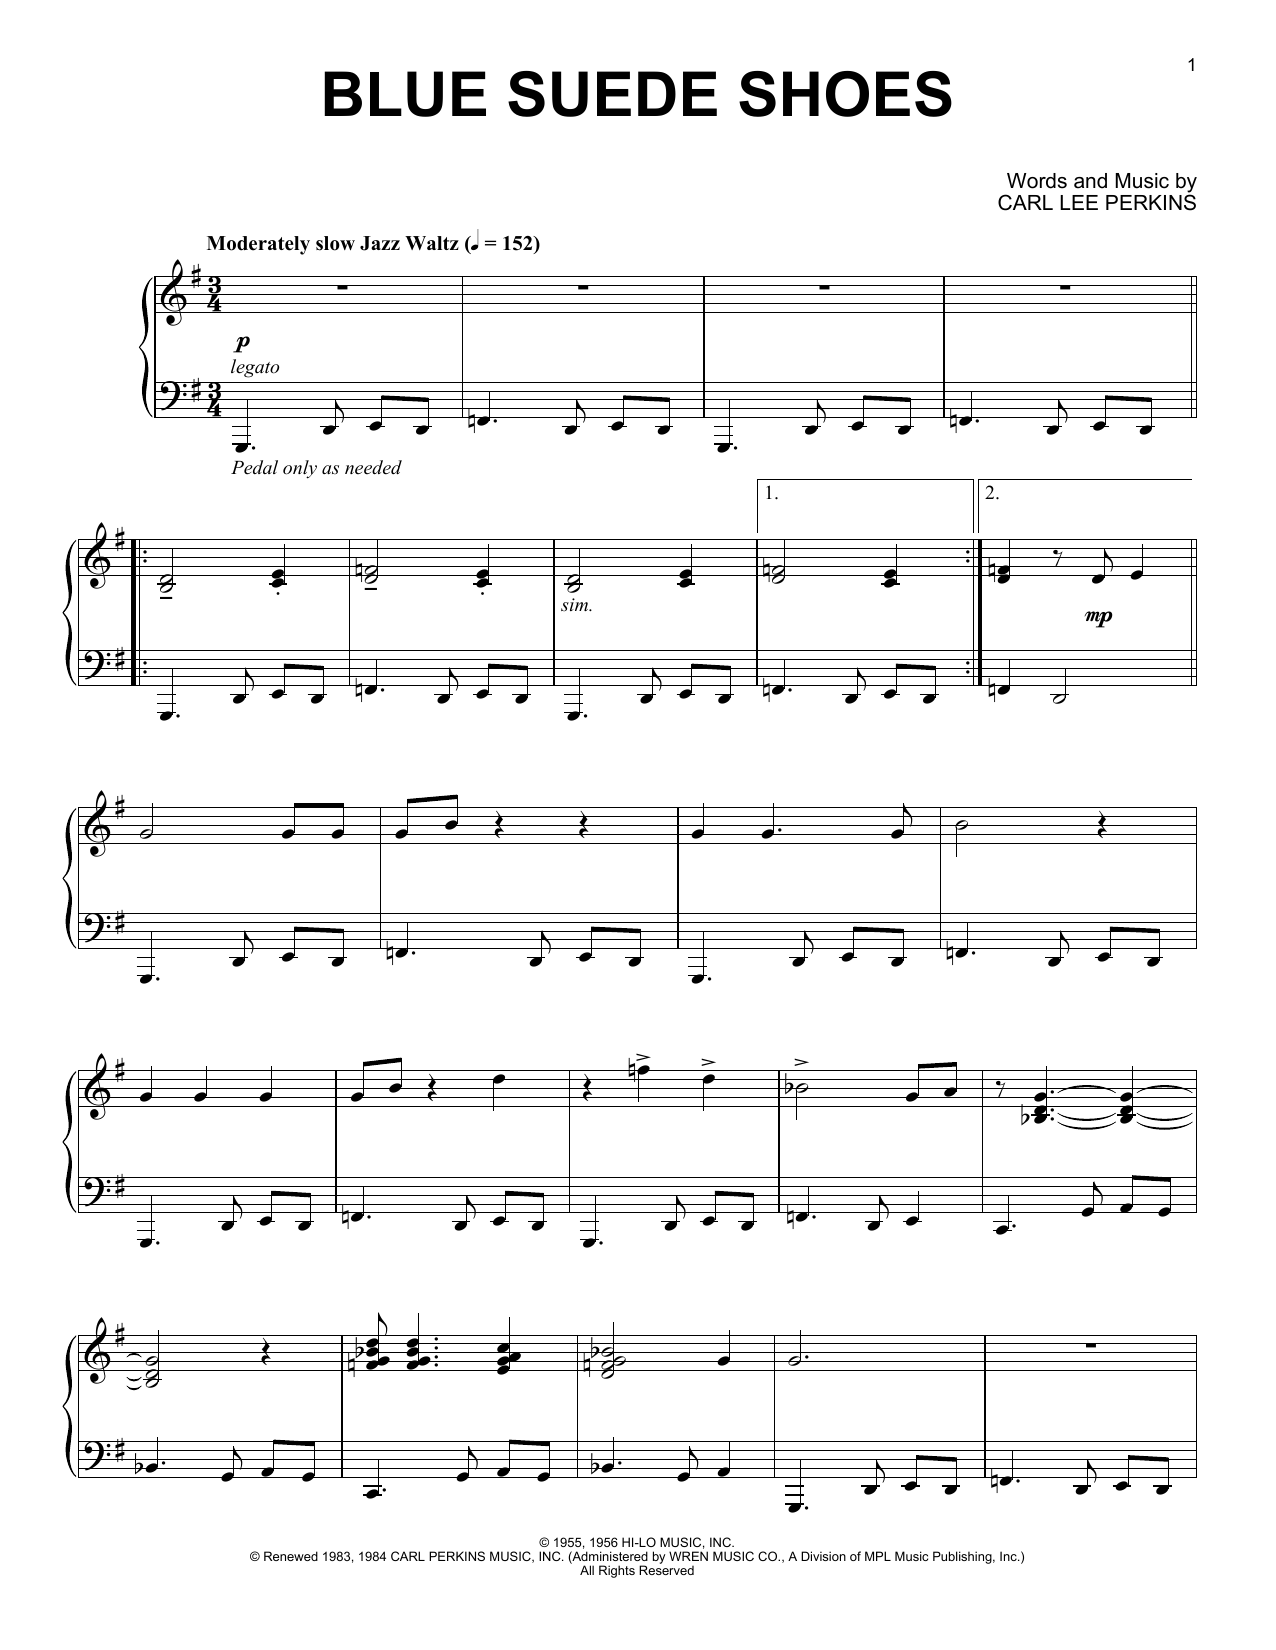 blue suede shoes lyrics all shook up musical Free download elvis presley-blue suede shoes (with lyrics (color and stereo) mp3, komodo - blue suede shoes (official music elvis presley-all shook up lyrics.